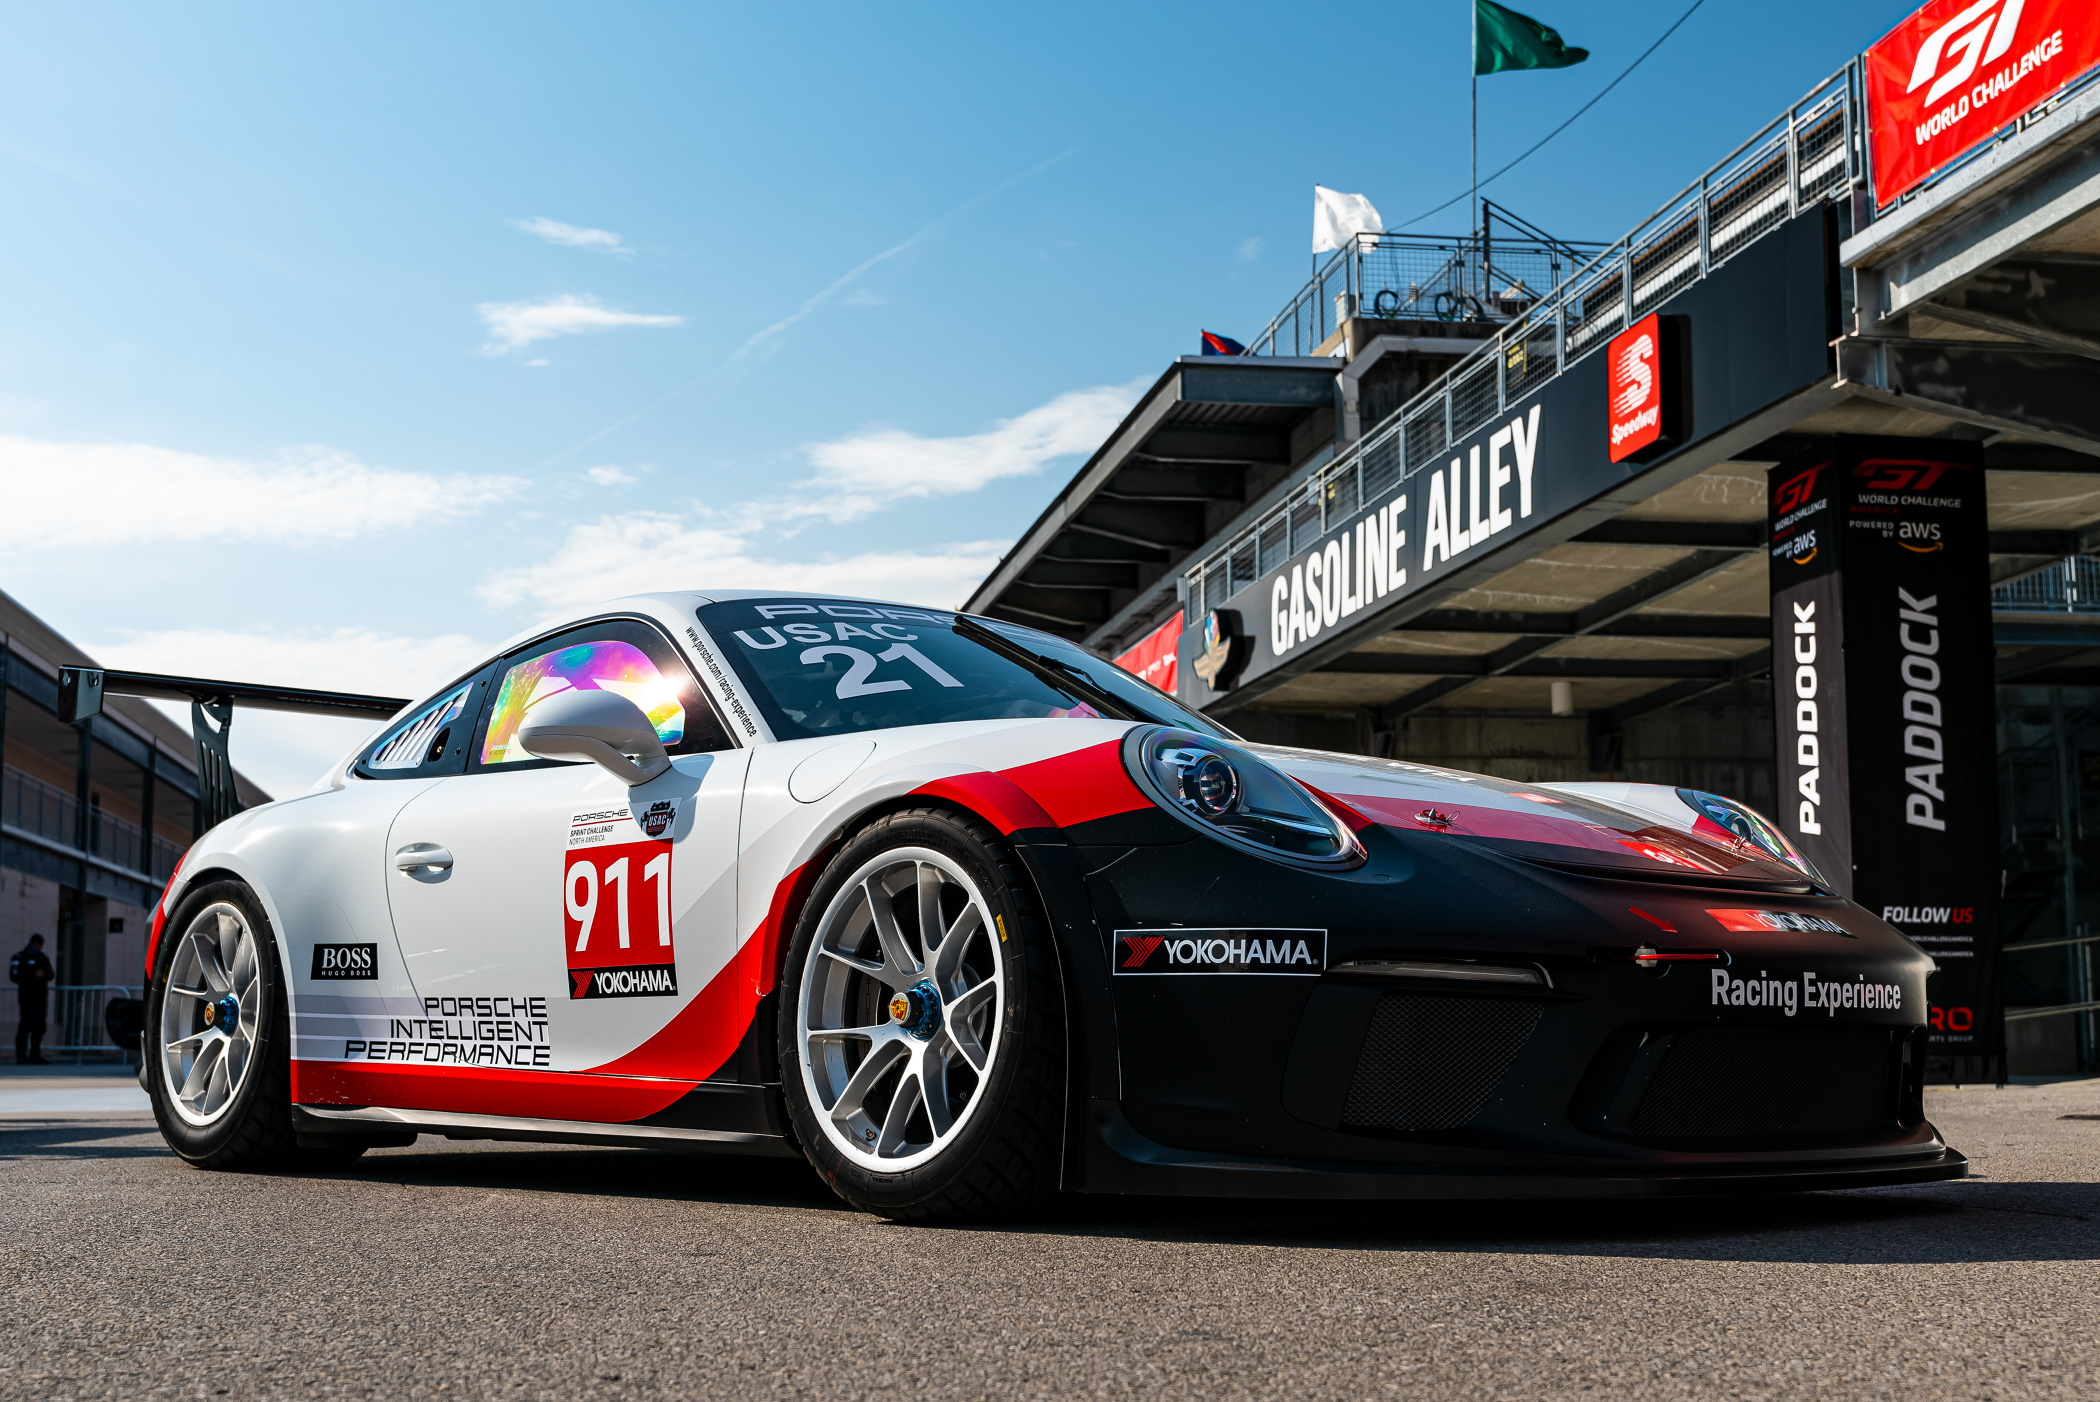 Yokohama Tire Announces New  Porsche Race Series Partnership with USAC